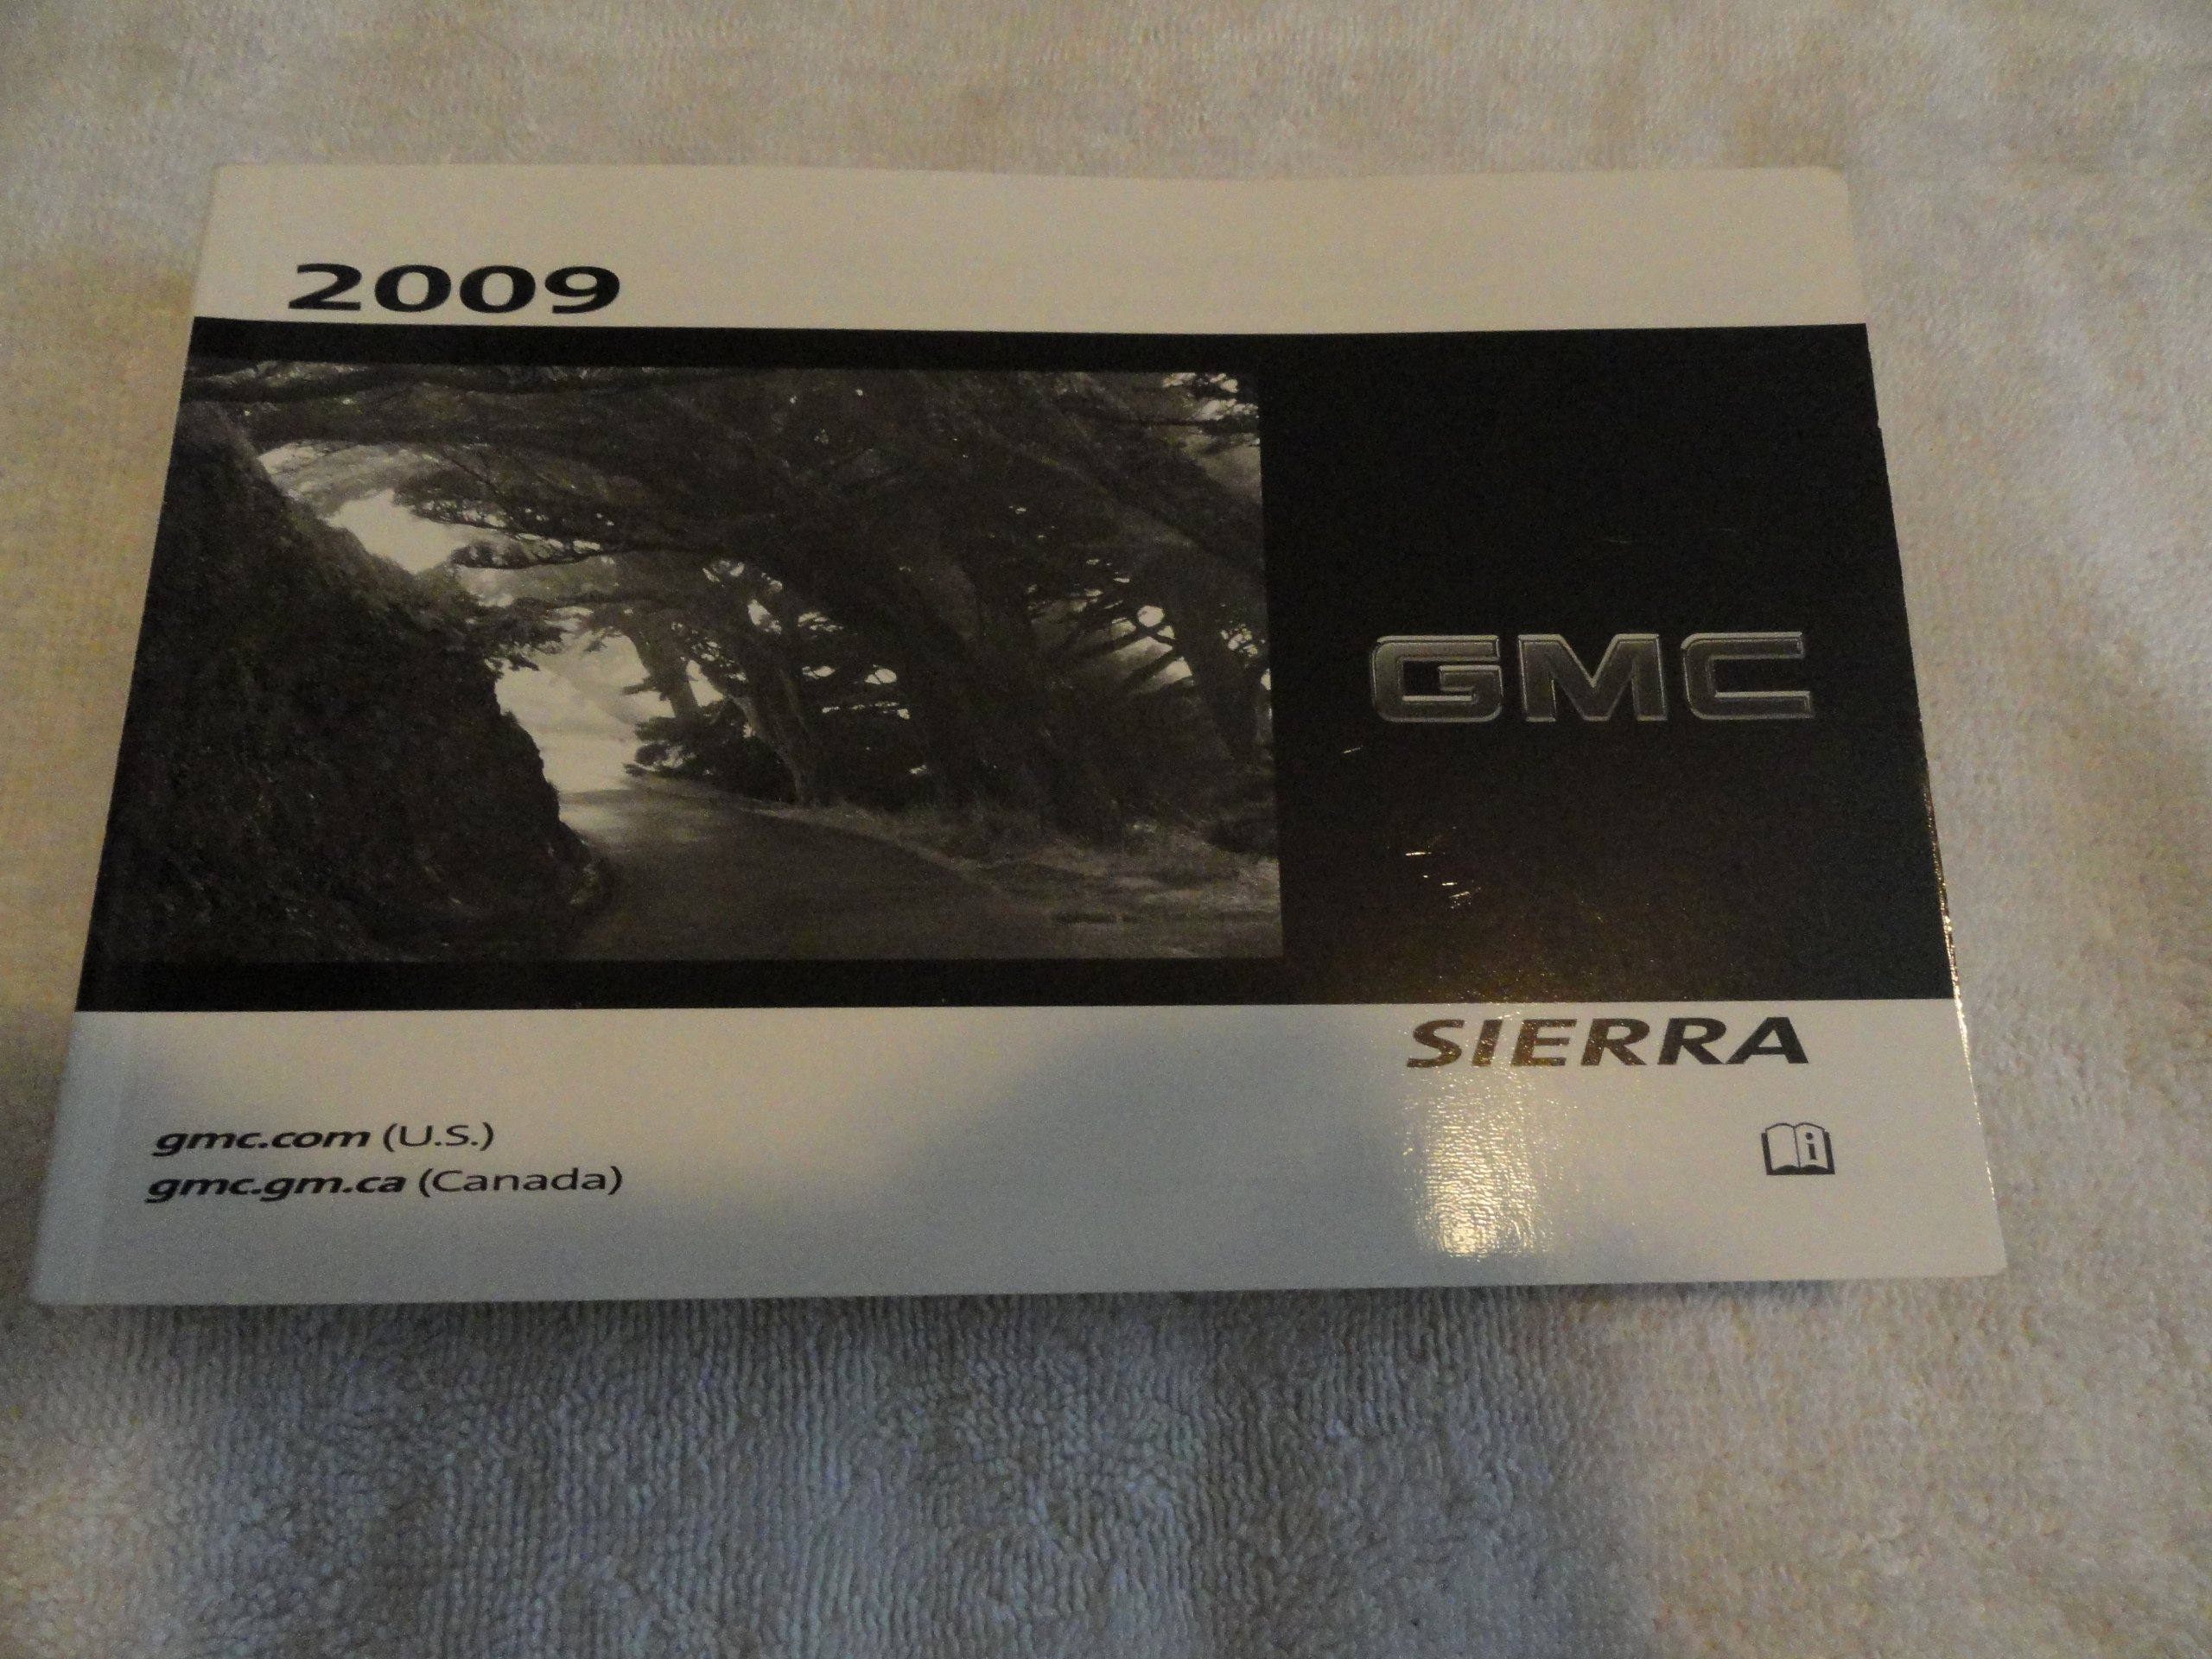 2009 gmc sierra owners manual gmc amazon com books rh amazon com 2009 gmc sierra 1500 owners manual 2009 gmc sierra 1500 owners manual